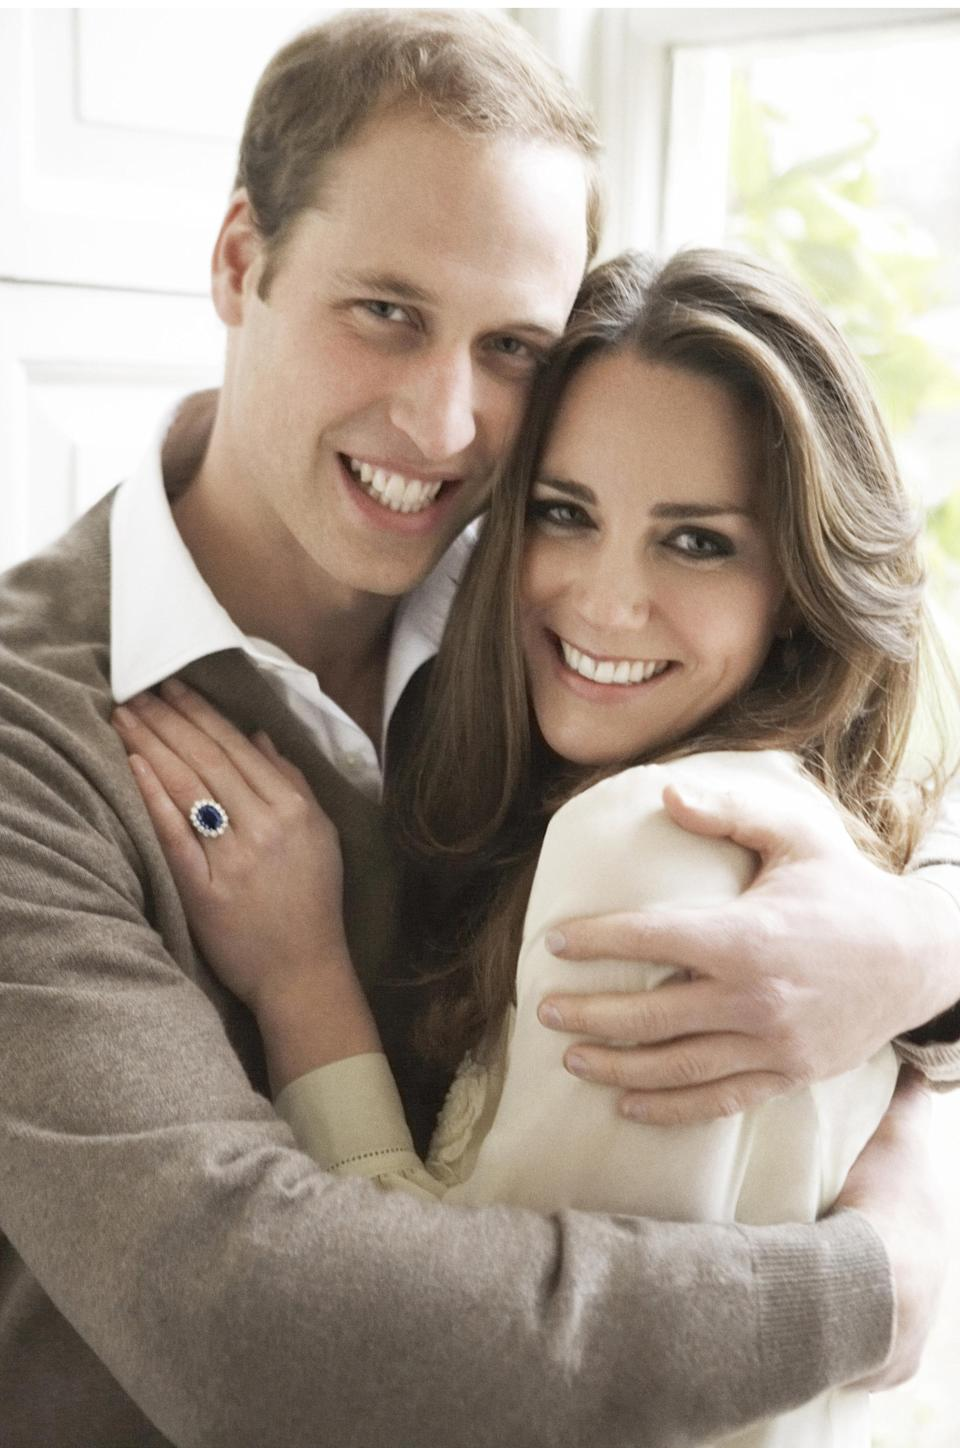 <p>The official portrait photographs of Prince William and Kate taken to mark their engagement by Mario Testino in 2010. (PA/Mario Testino)</p>